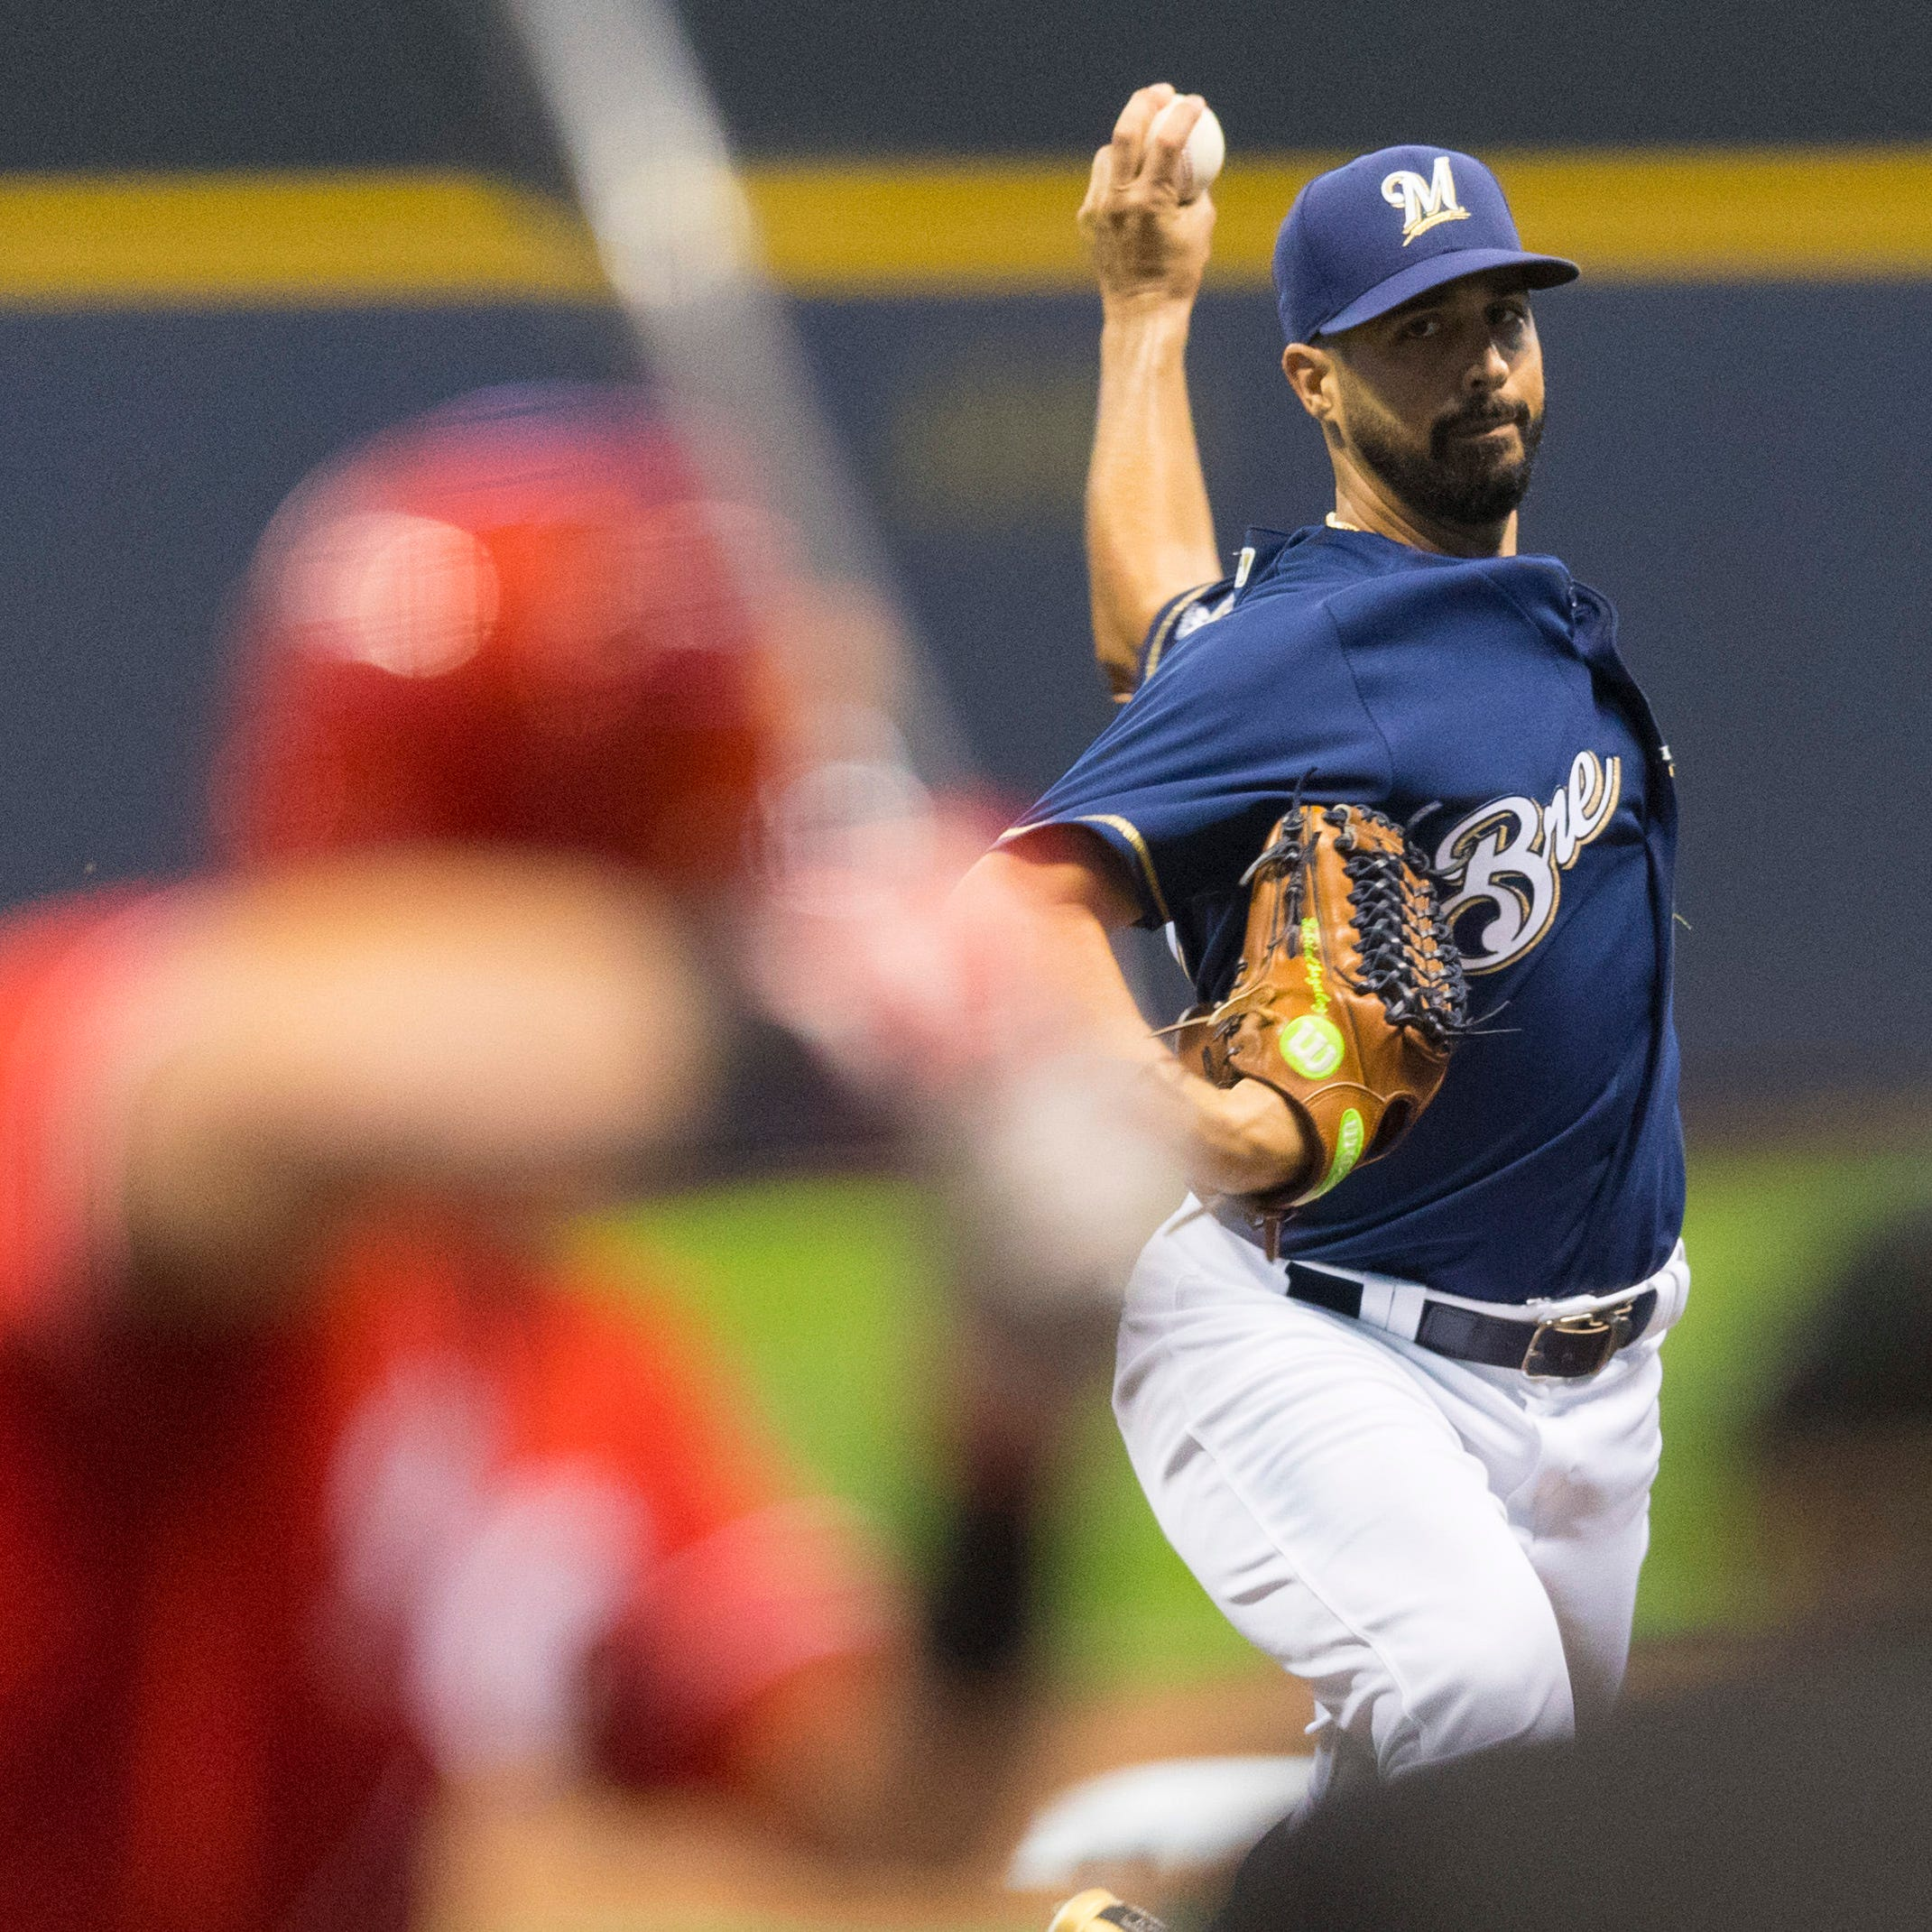 Get To Know Q&A: Now settled in with Brewers, Gio Gonzalez just wants to make a difference